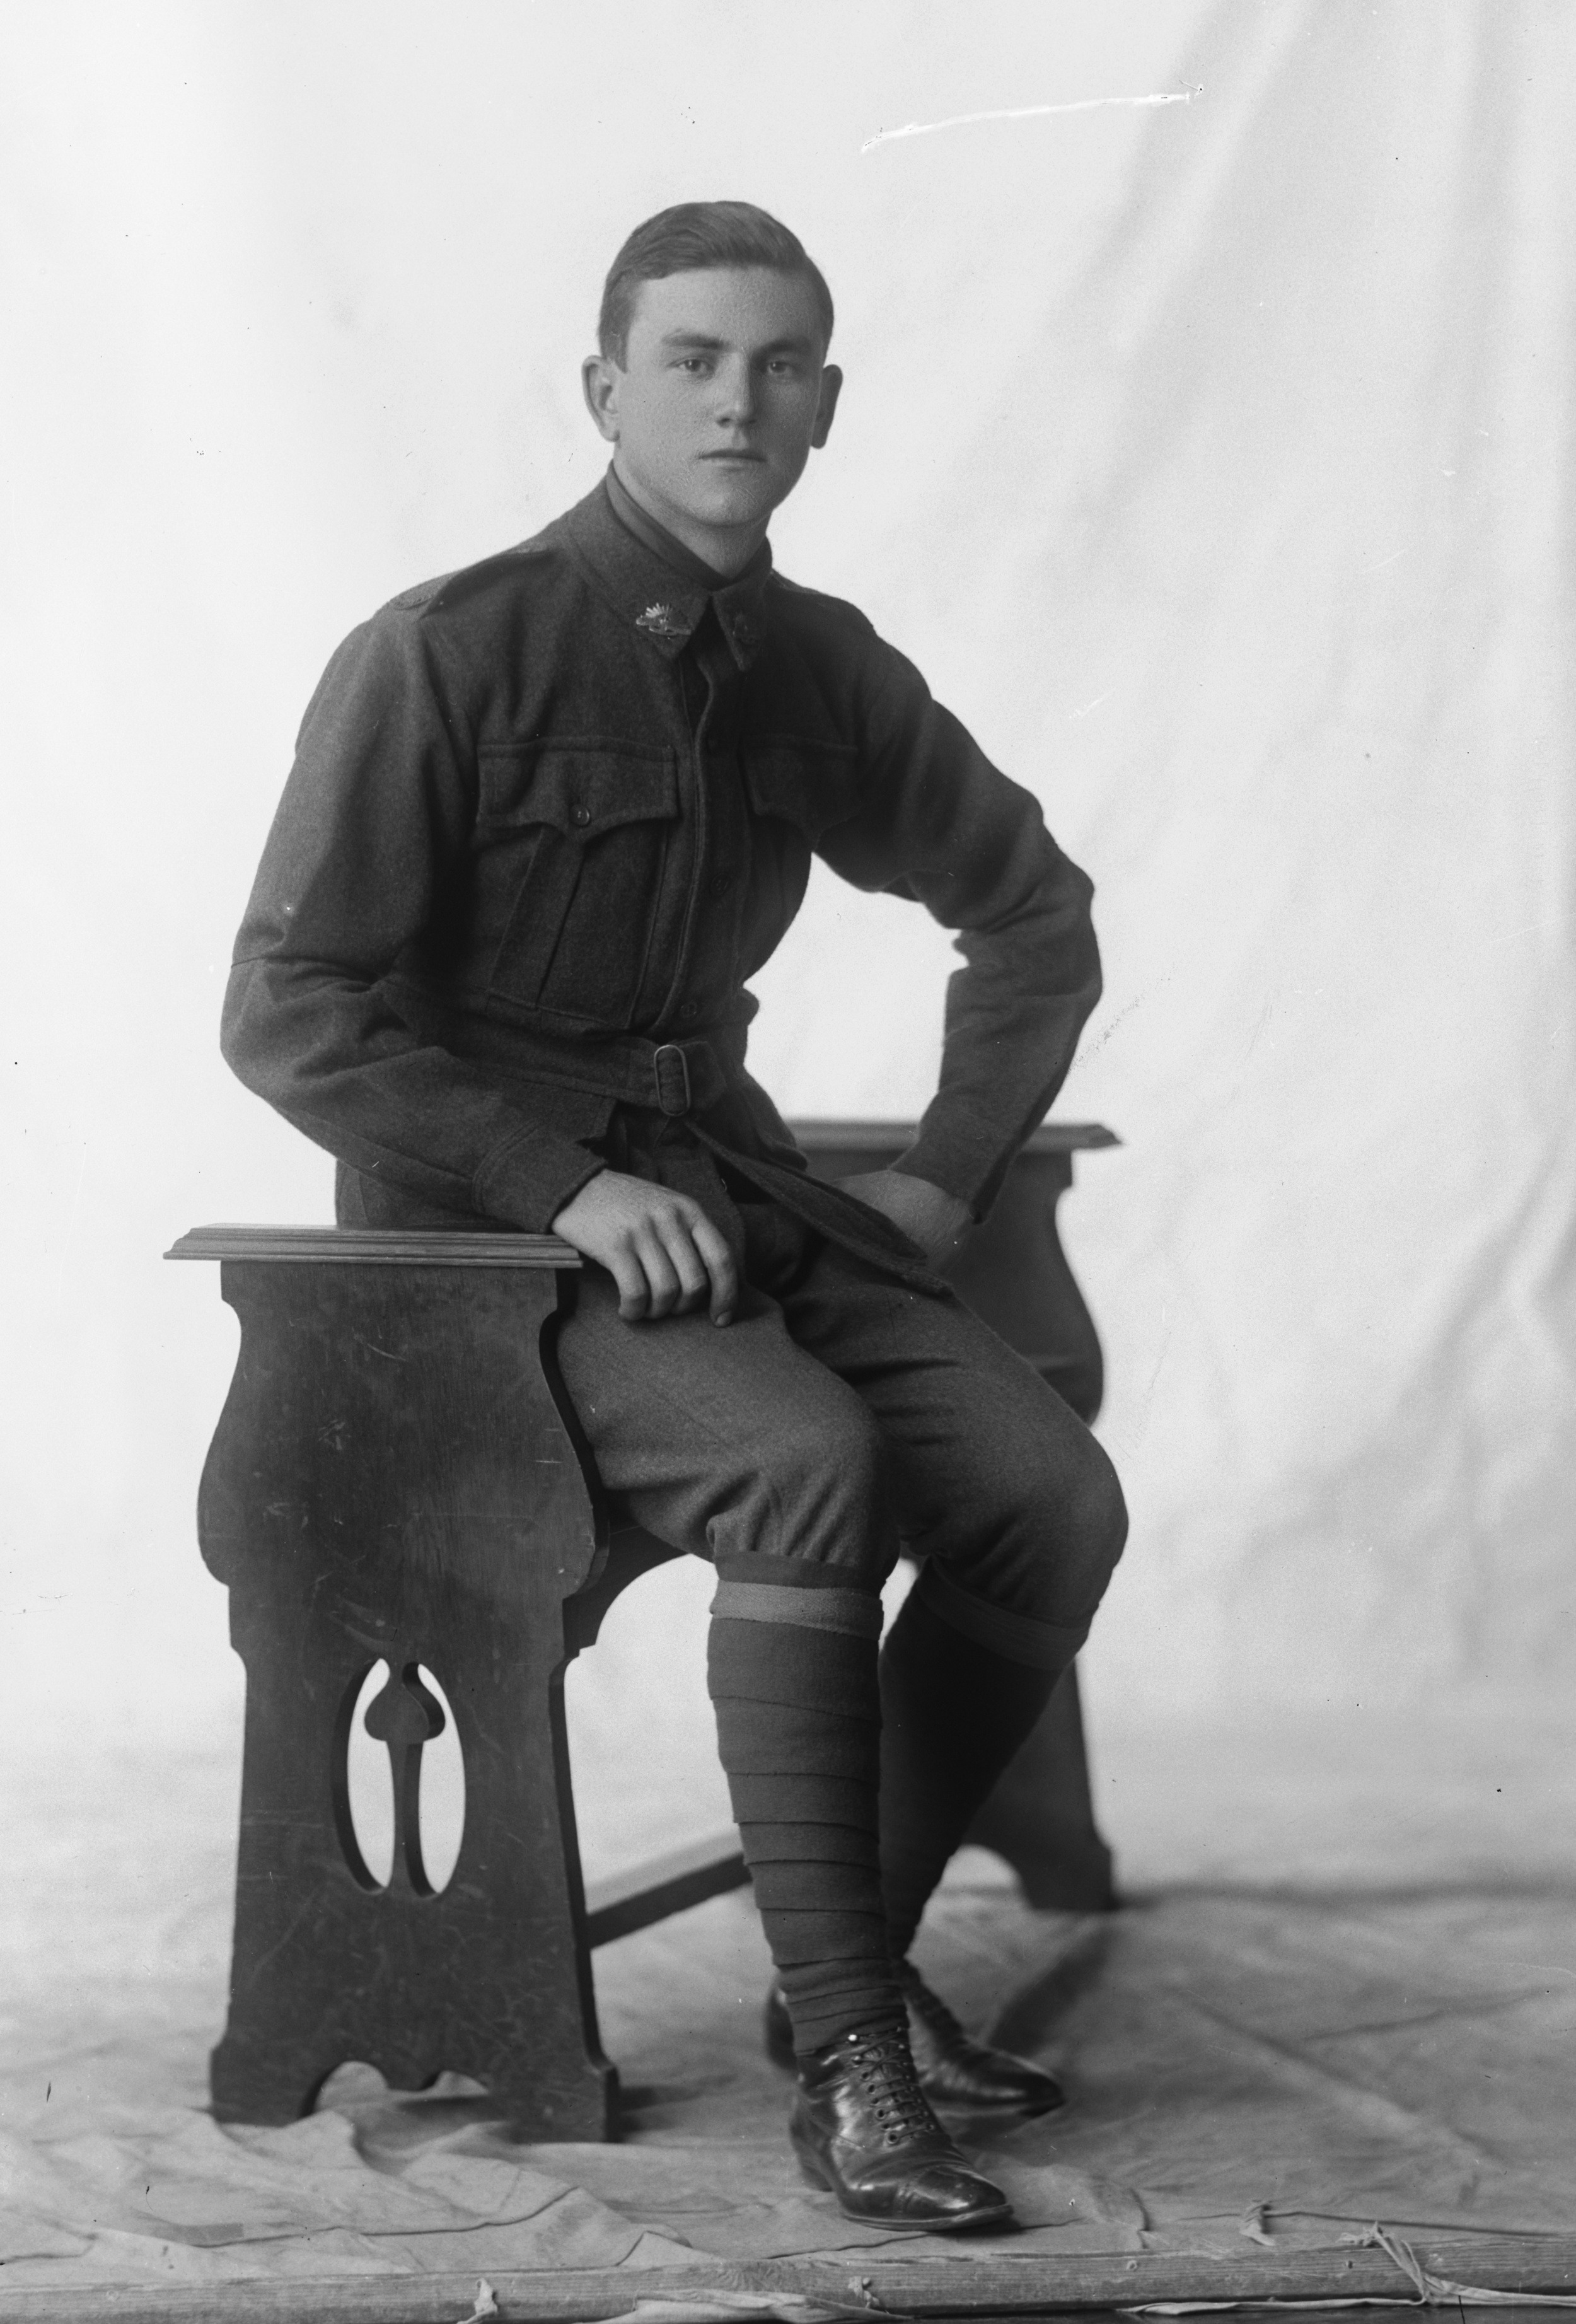 Photographed at the Dease Studio, 117 Barrack Street Perth WA Image courtesy of the State Library of Western Australia: 108470PD